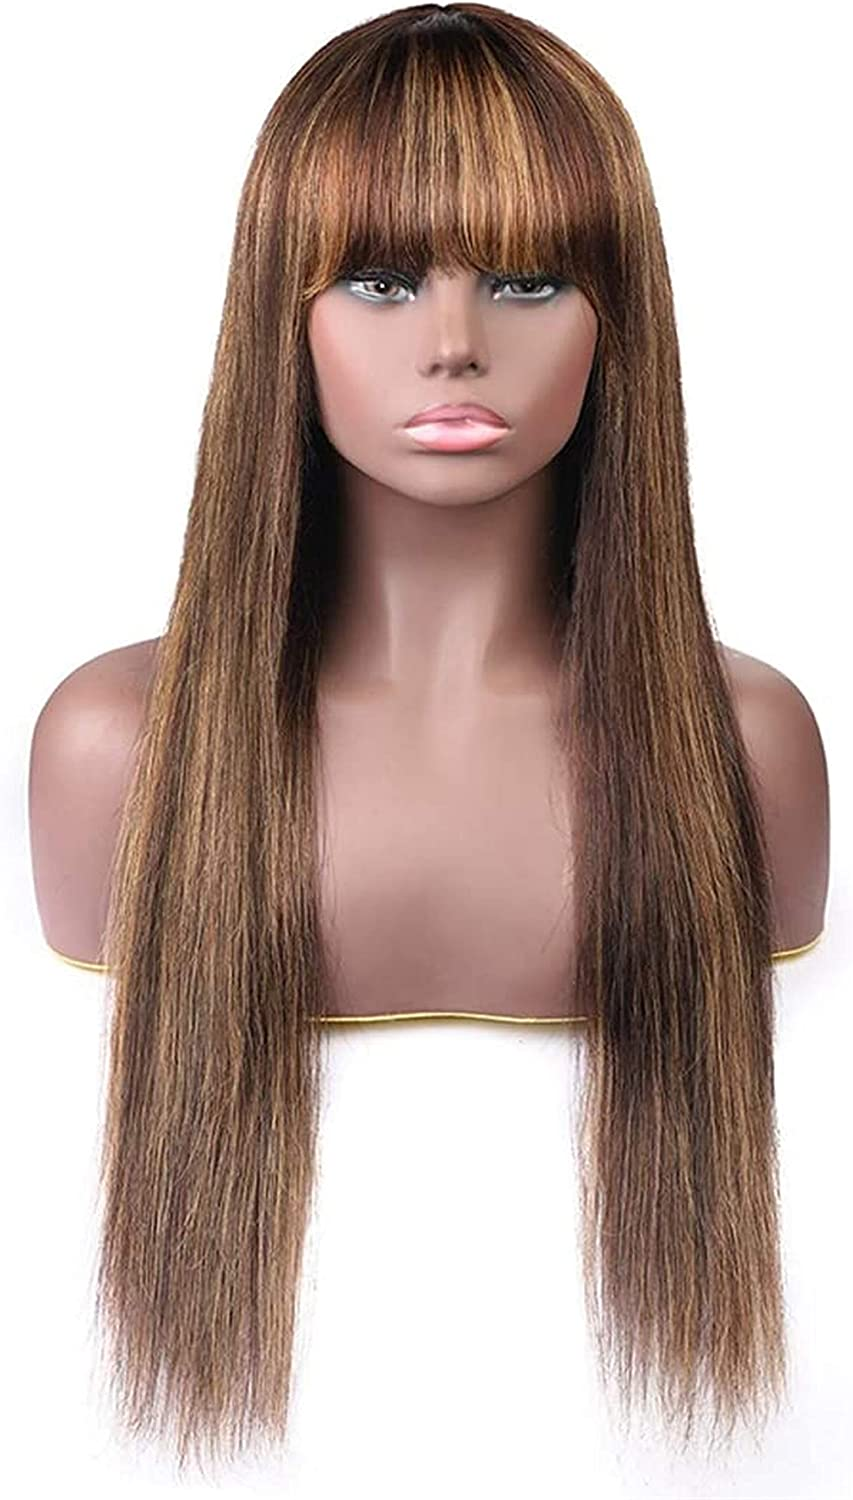 LCNING online shop Wig Wigs lace pre-Human Brown Hair Ranking TOP6 Heat-Resistant Bre